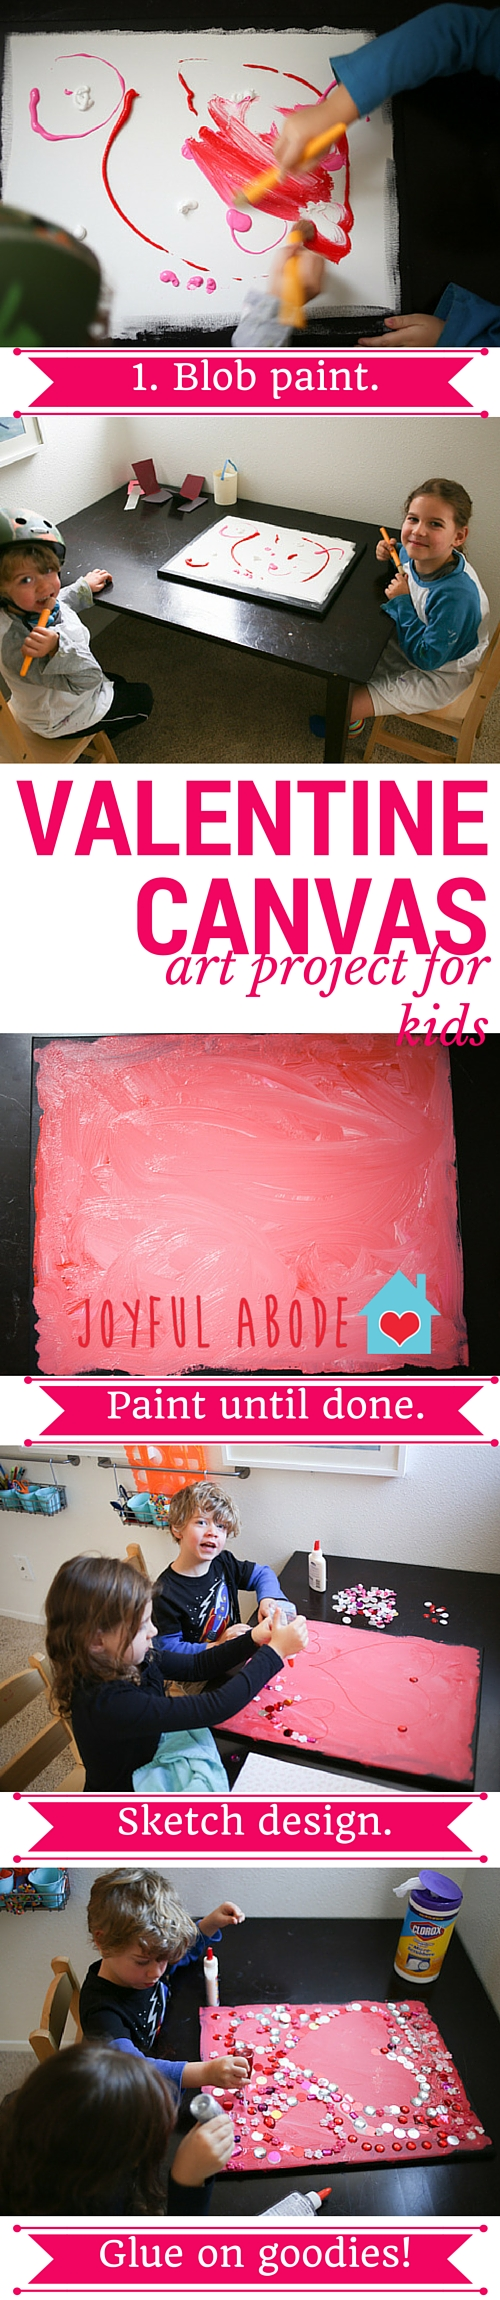 Valentine canvas - art project for kids - fun and easy DIY for preschoolers and kindergarteners.